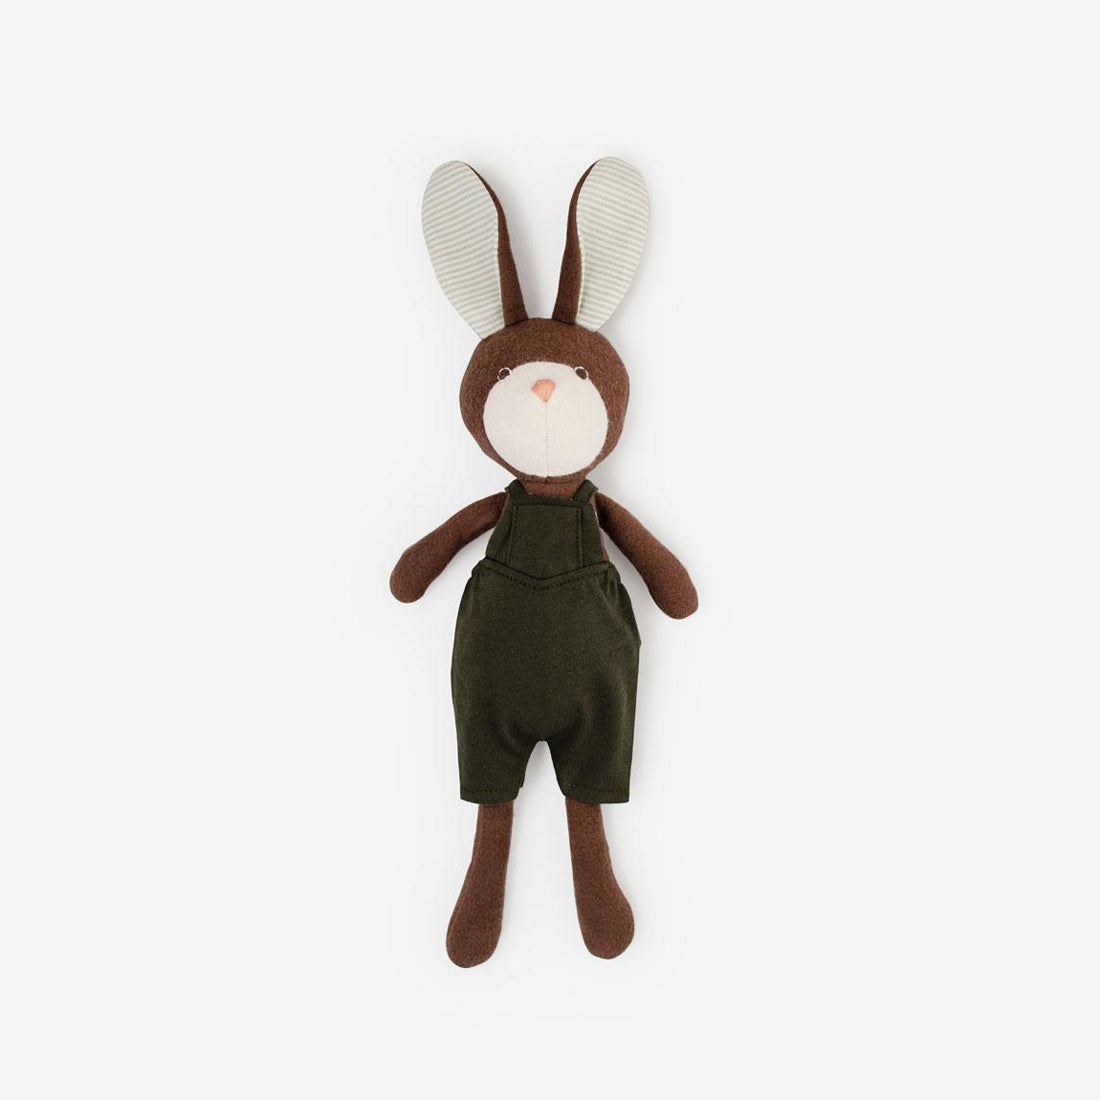 Lucas Rabbit in Loden Picnic Overalls